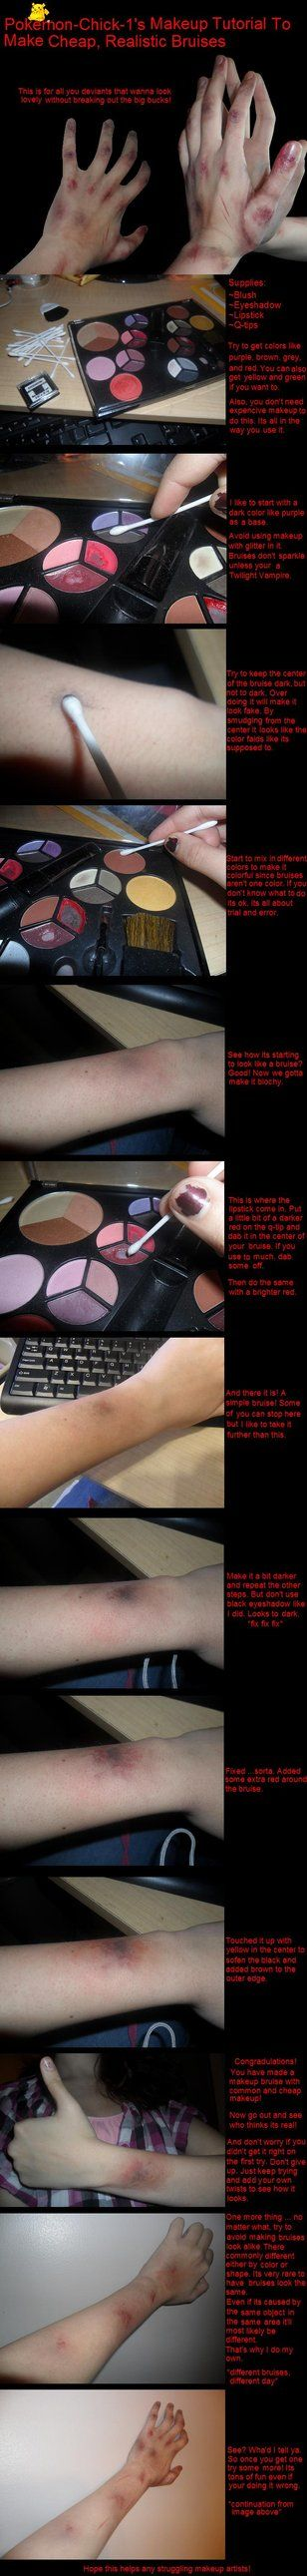 Just a tutorial for people that wanted to know how I make my makeup bruises. Its really easy but its easier to show them than explain. Yeah I use normal makeup. This stuff gets used for special eff...